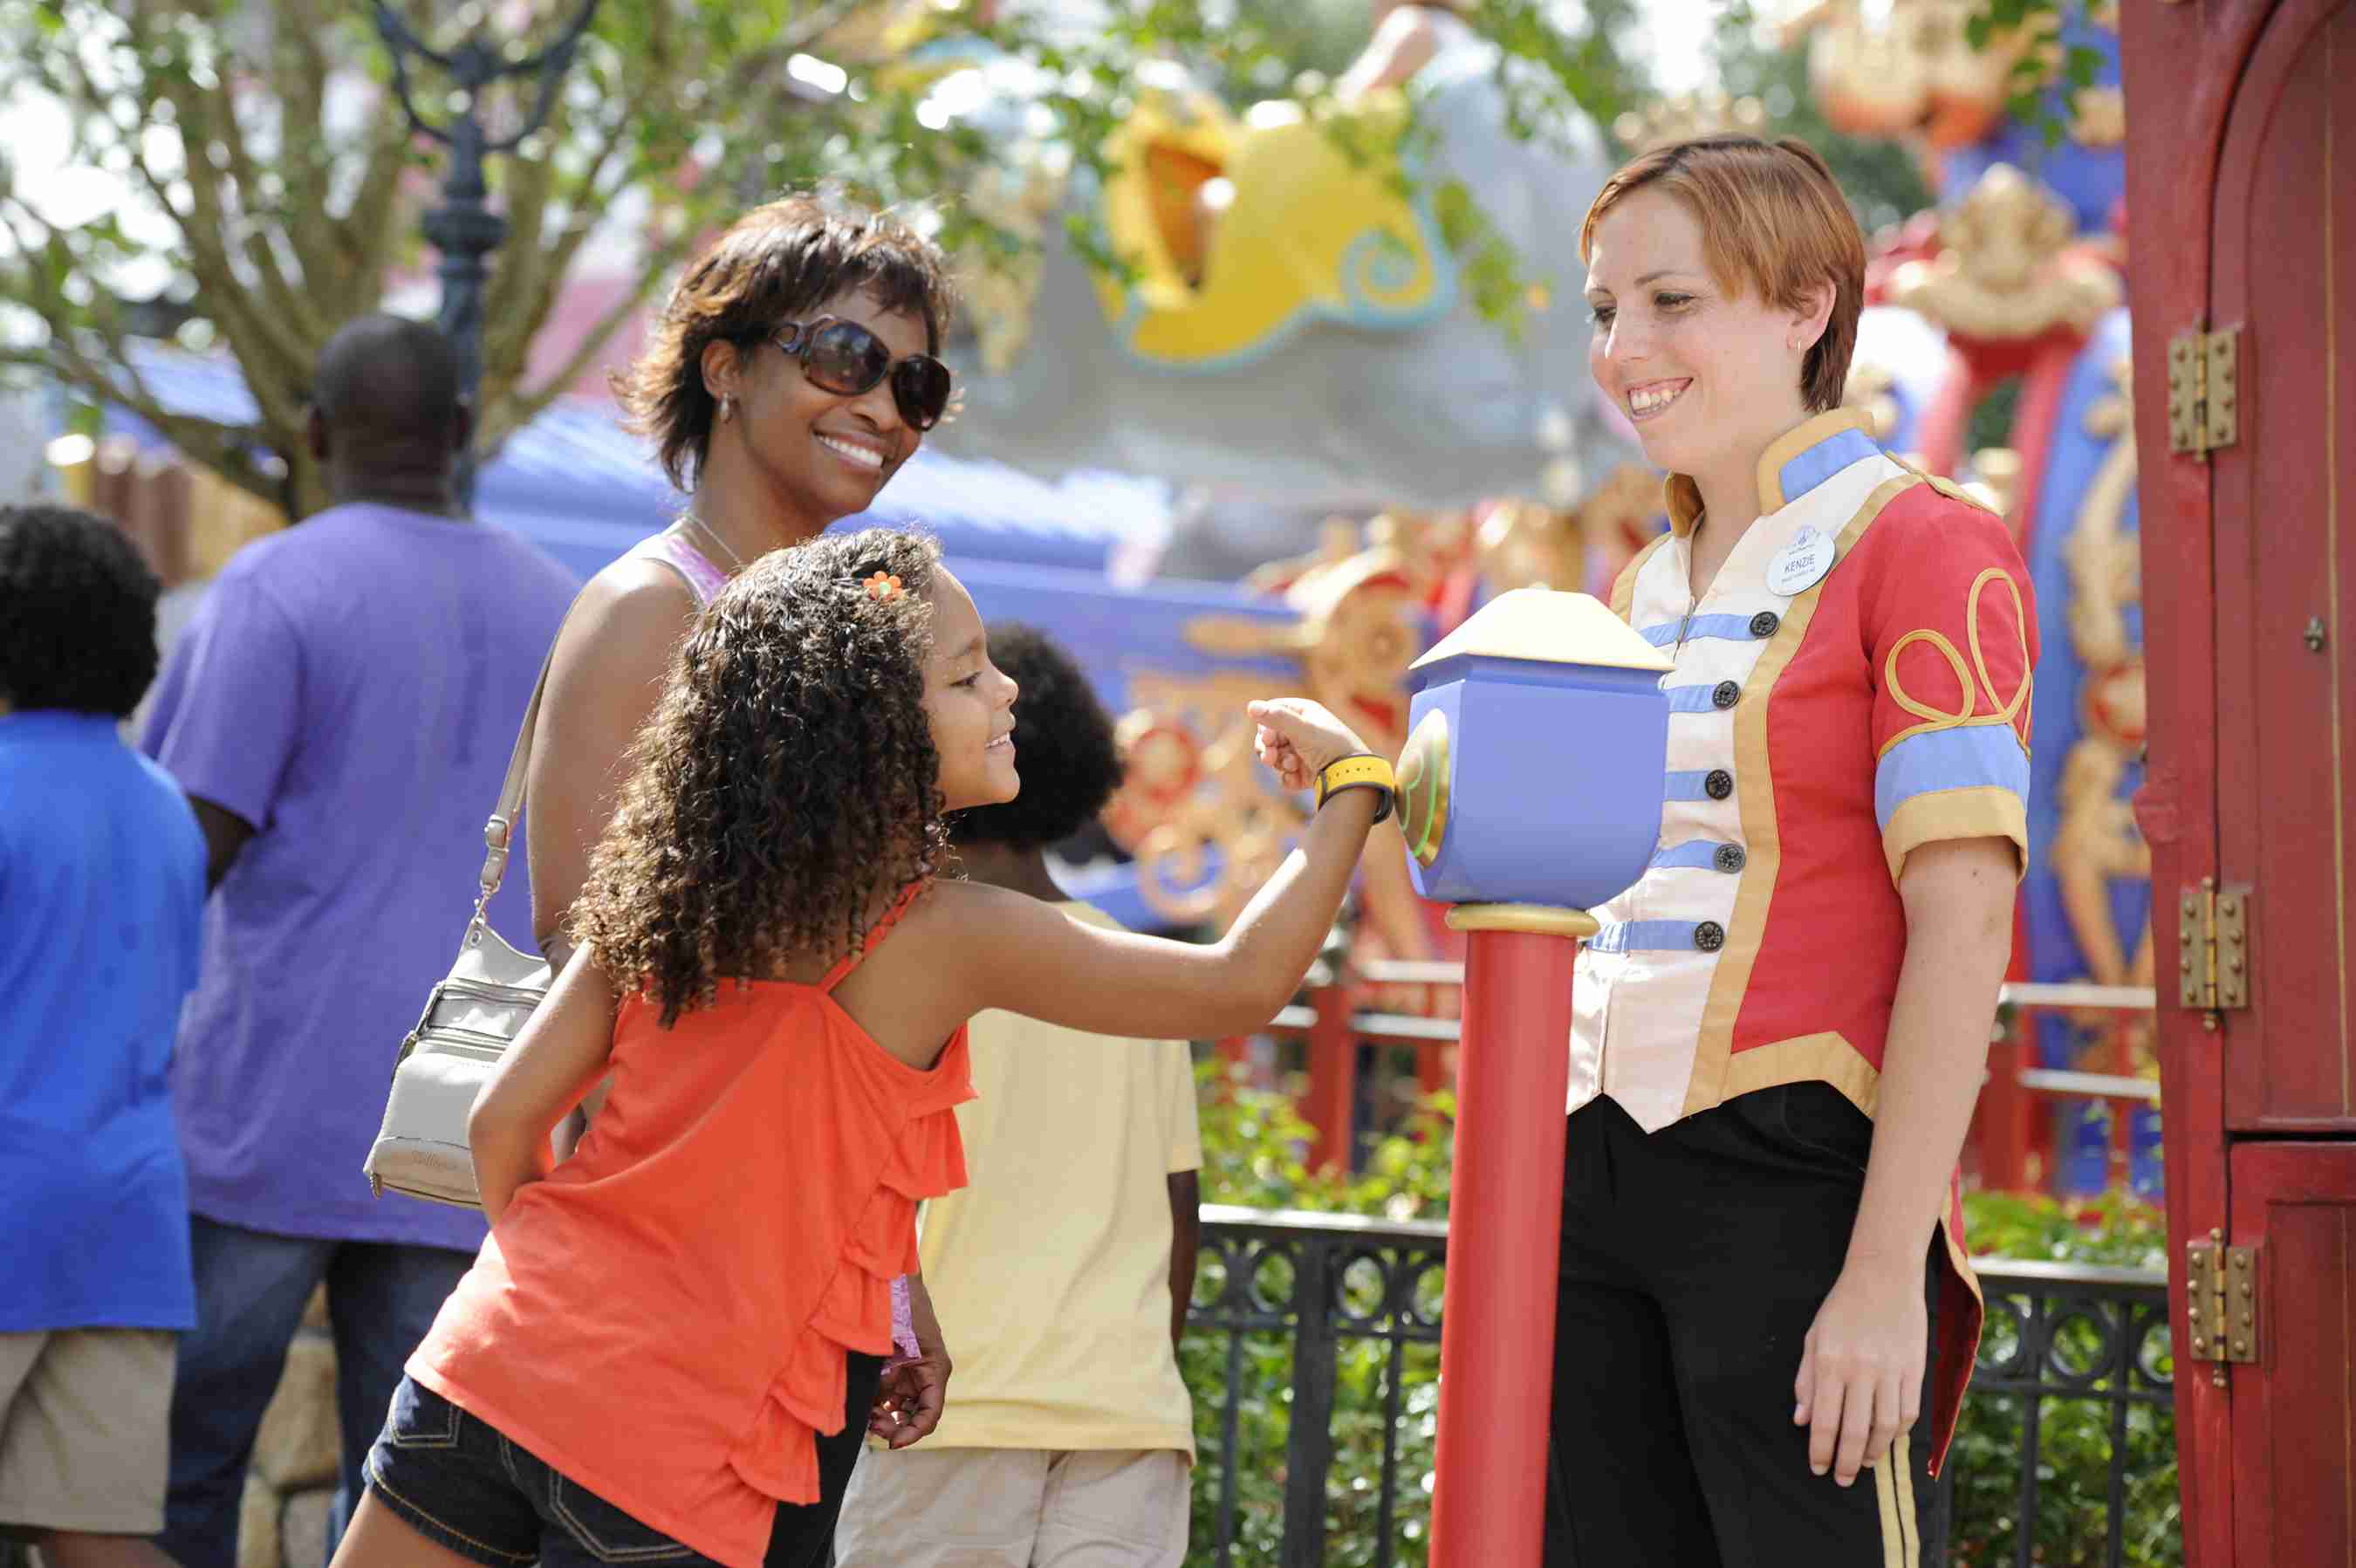 Guests using MagicBands to access rides